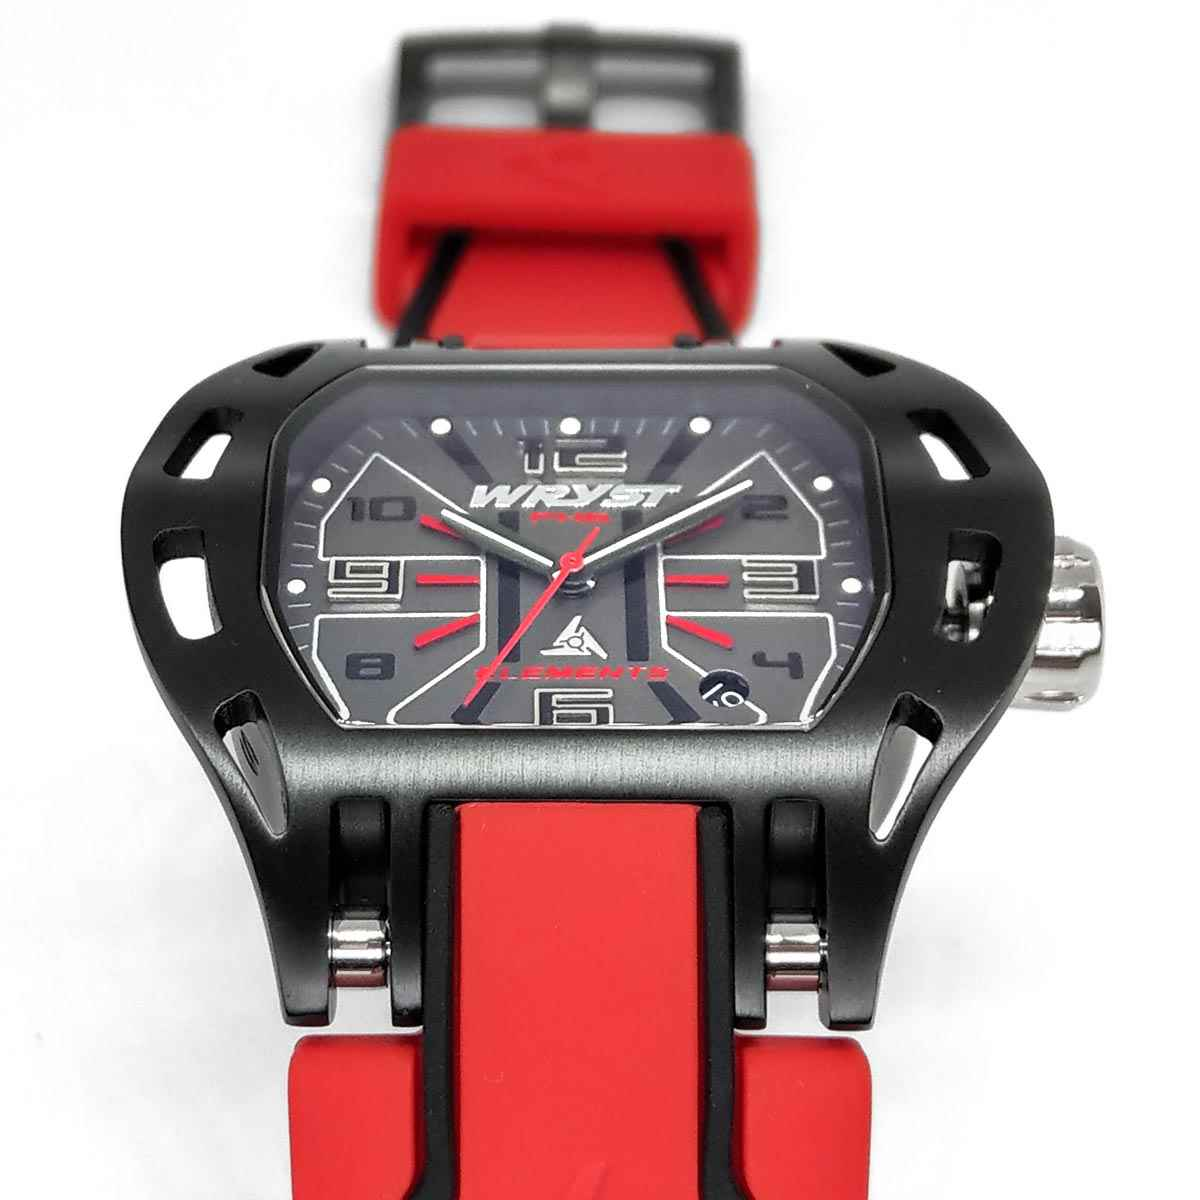 Wryst mens fashion watches PH6 red